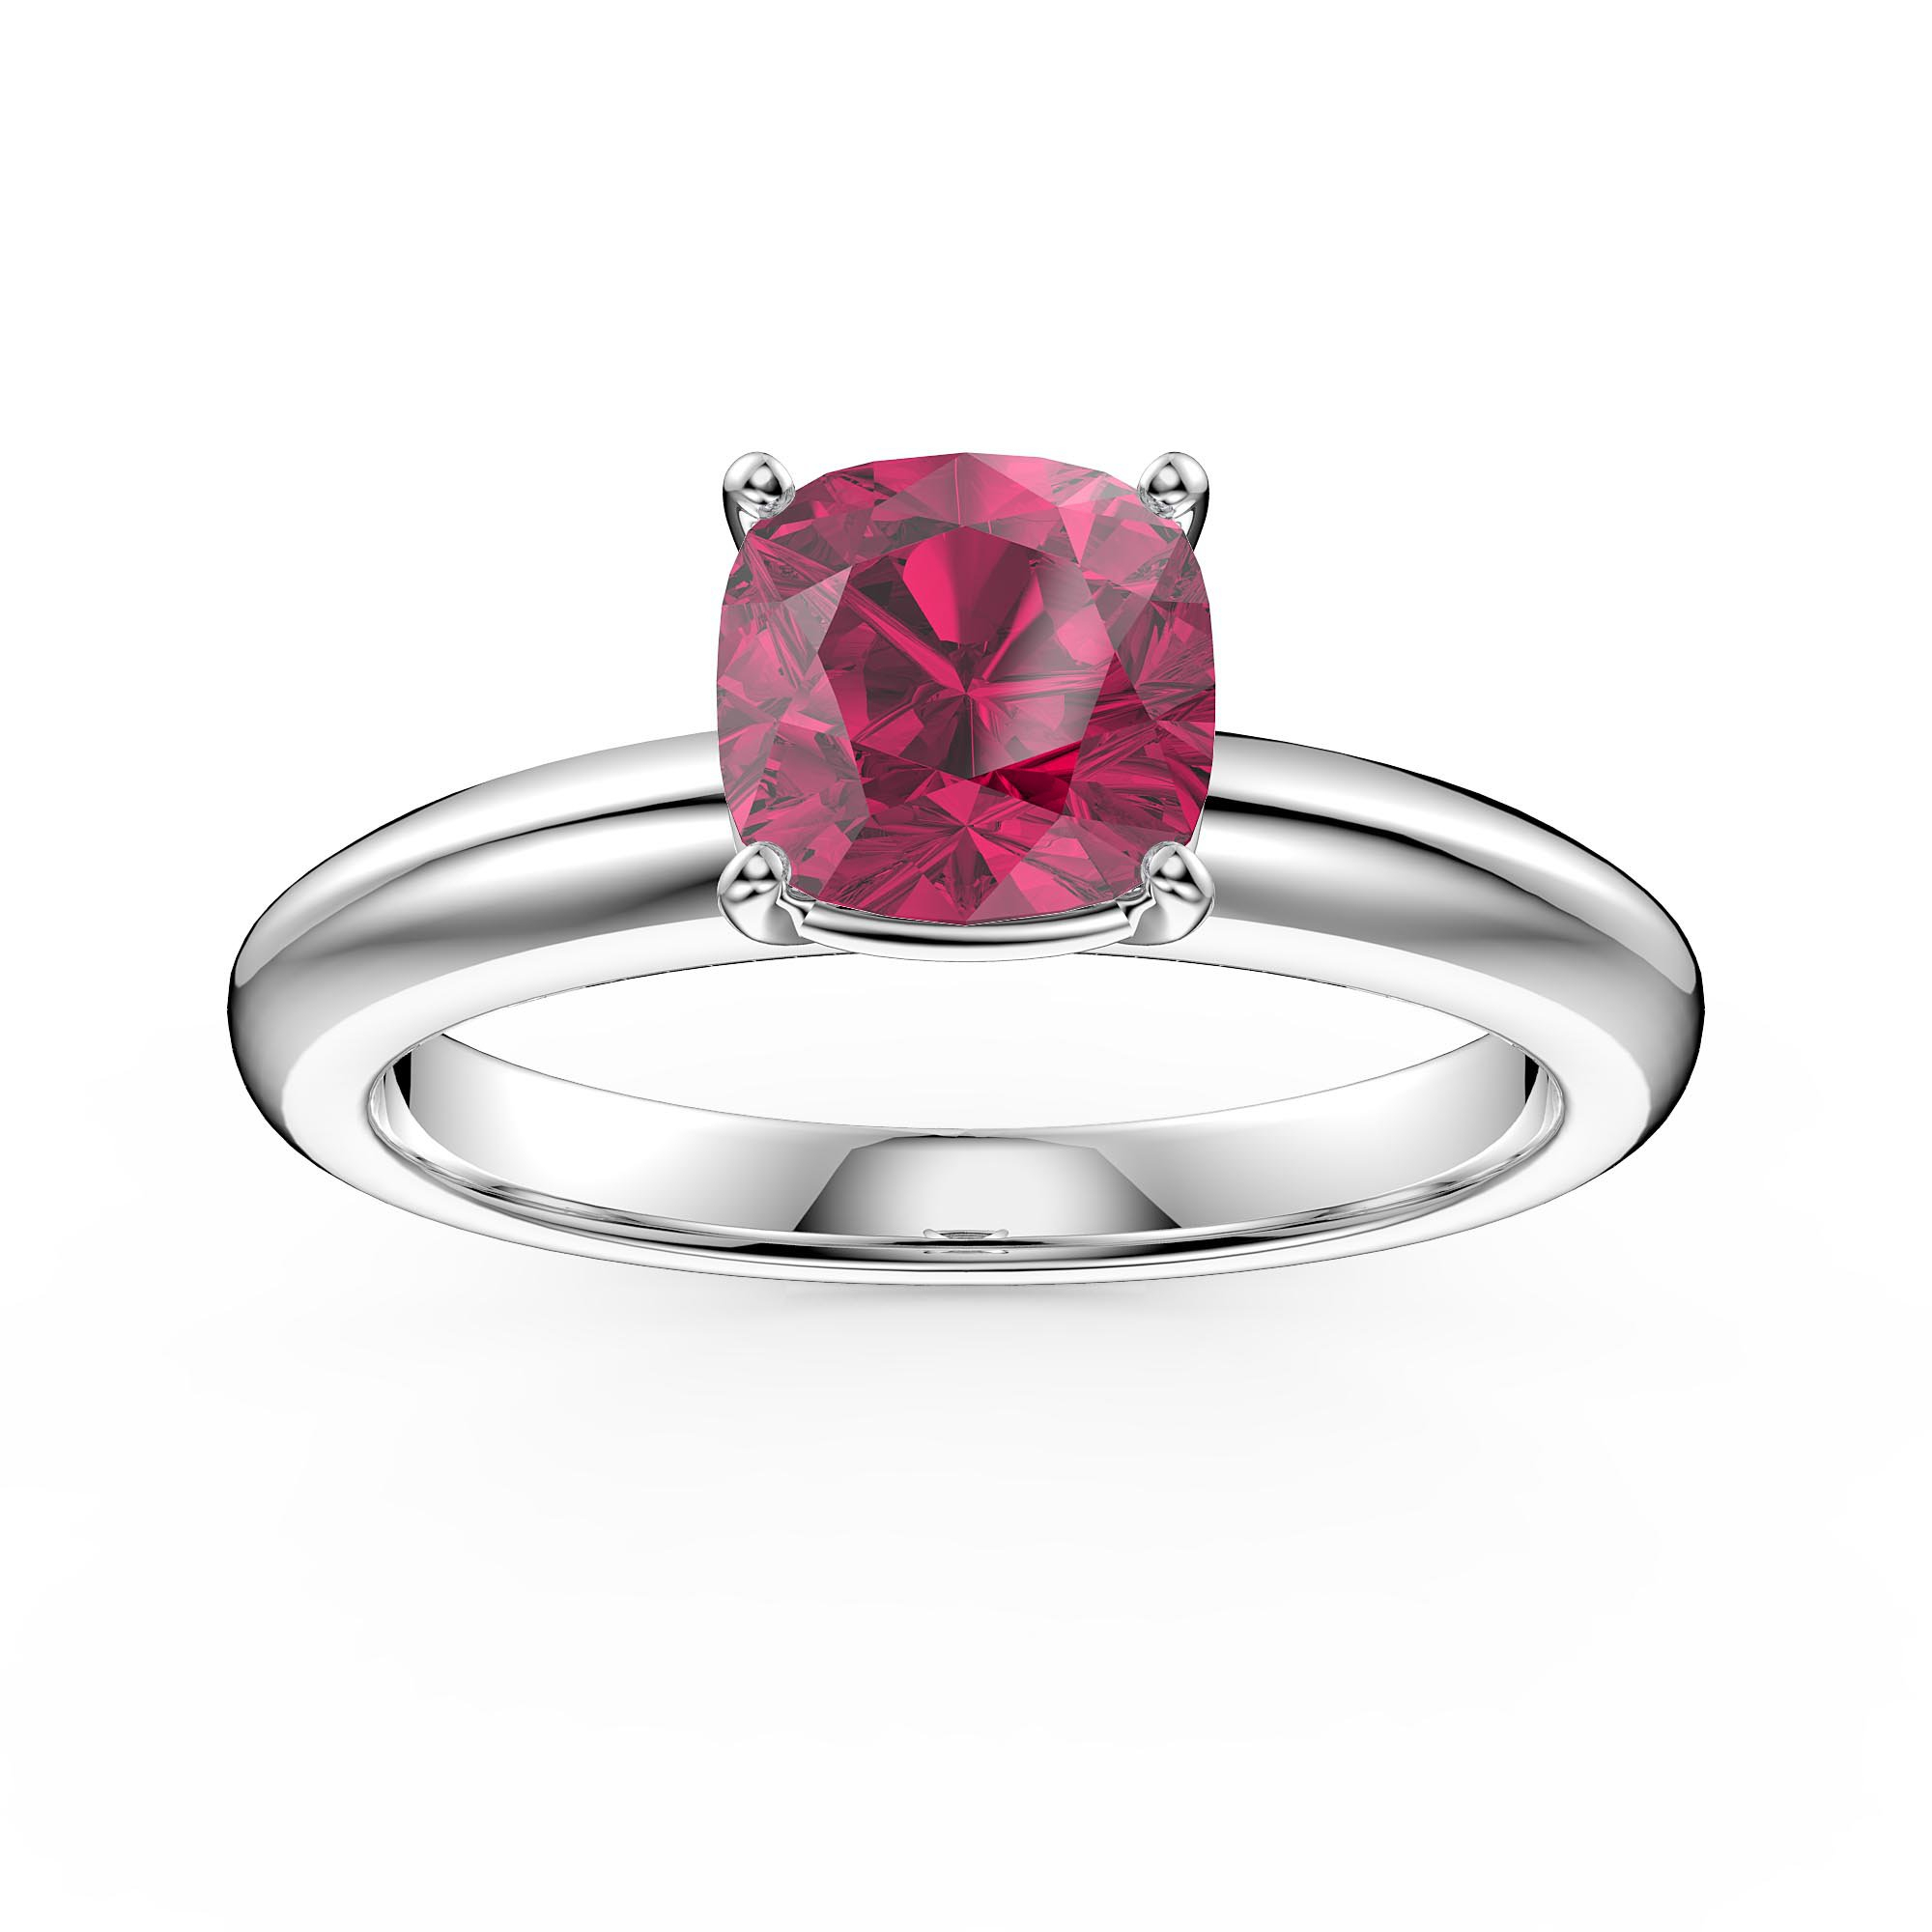 Unity 1Ct Cushion Cut Ruby Solitaire 18Ct White Gold Proposal Ring Intended For Cushion Cut Ruby Rings (Gallery 11 of 25)